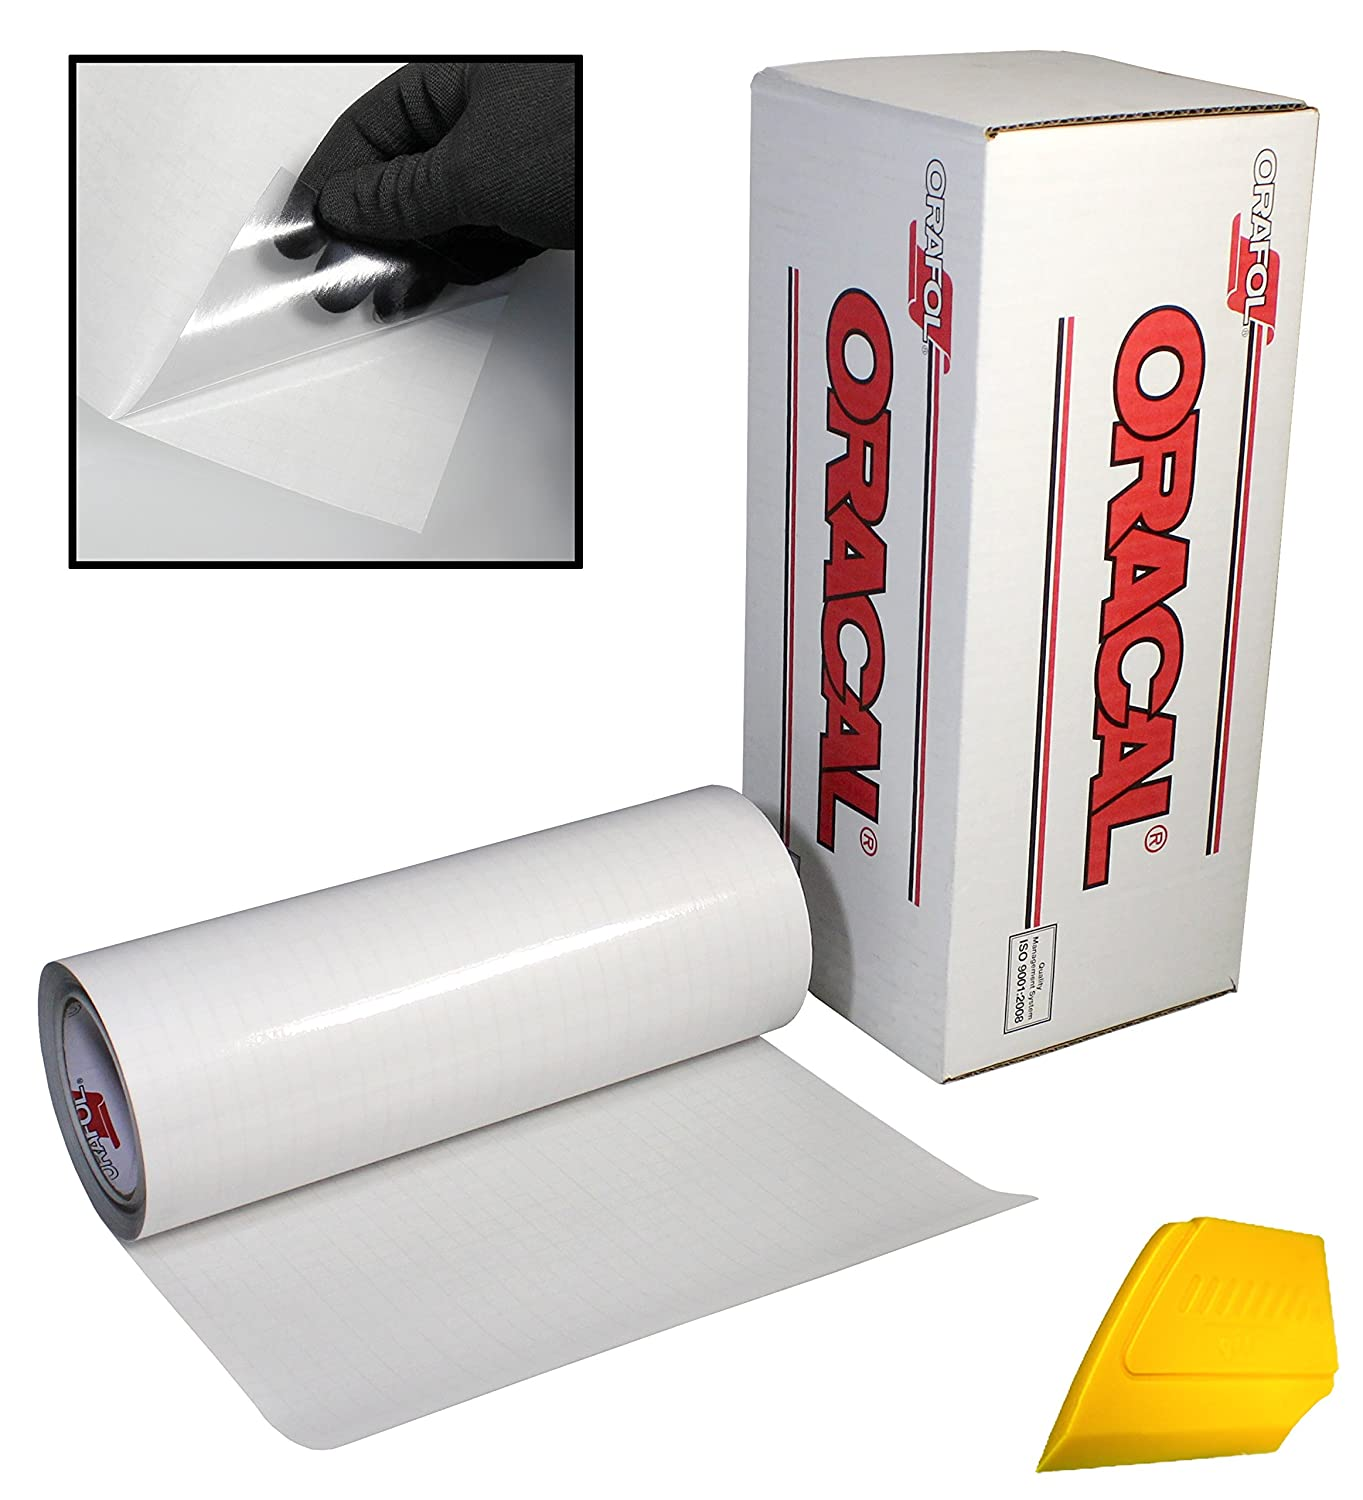 ORACAL Transparent Transfer Paper Tape Roll w/Hard Yellow Detailer Squeegee (3ft x 12')